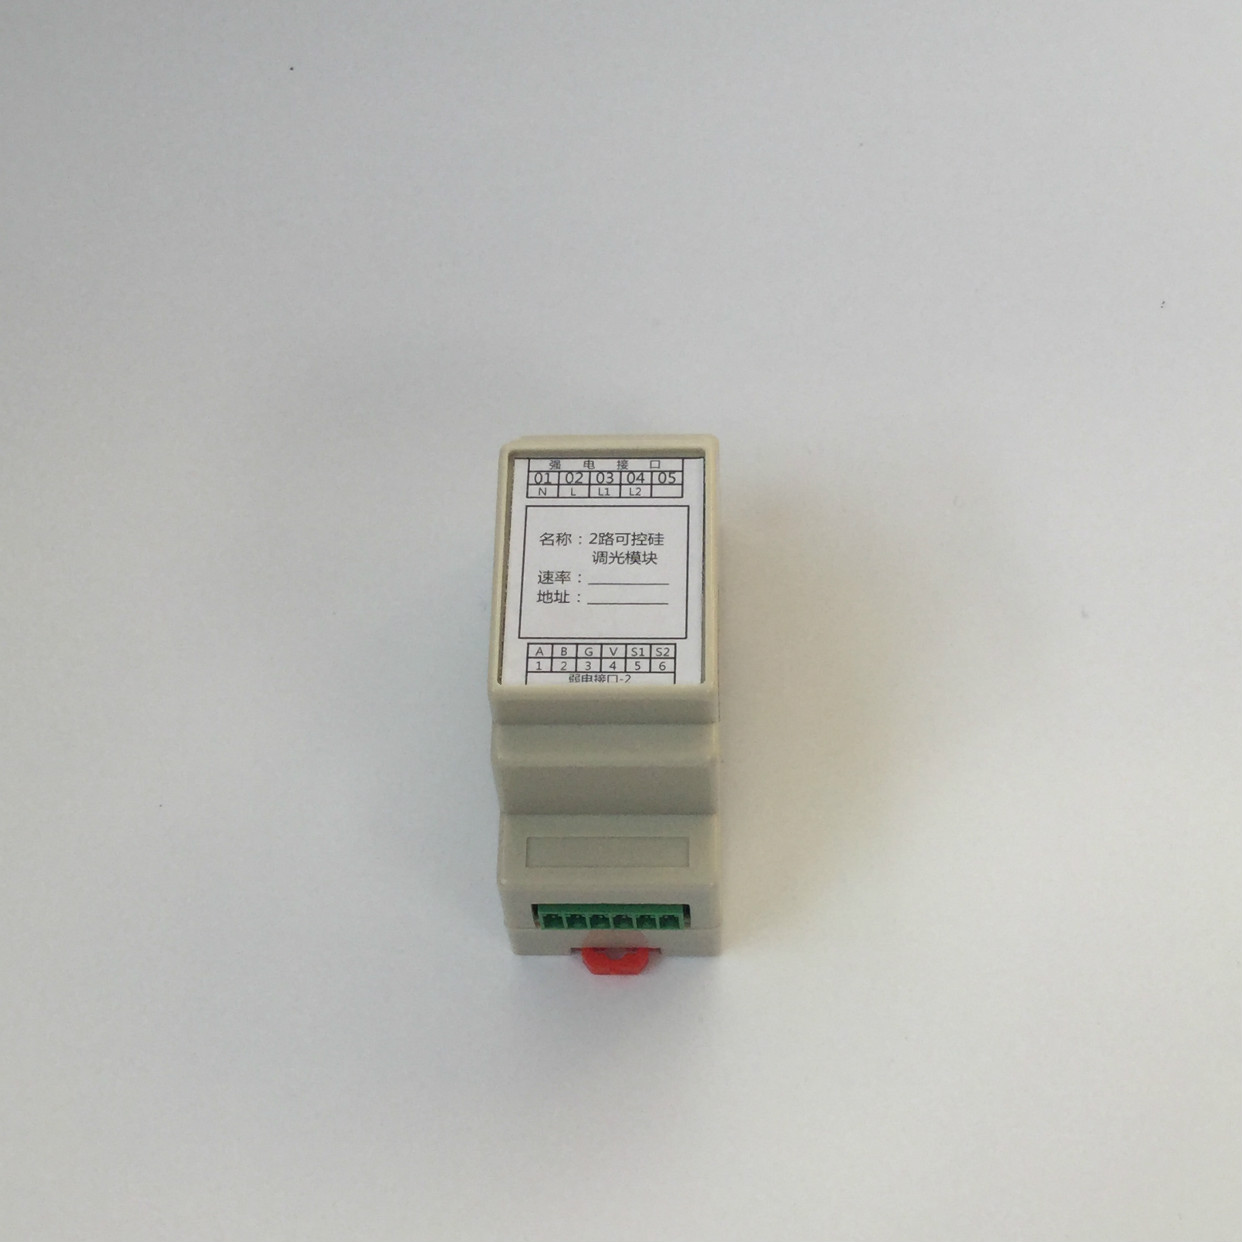 все цены на 2 Way Thyristor Dimming Module RS485, Modbus, HD0742 онлайн